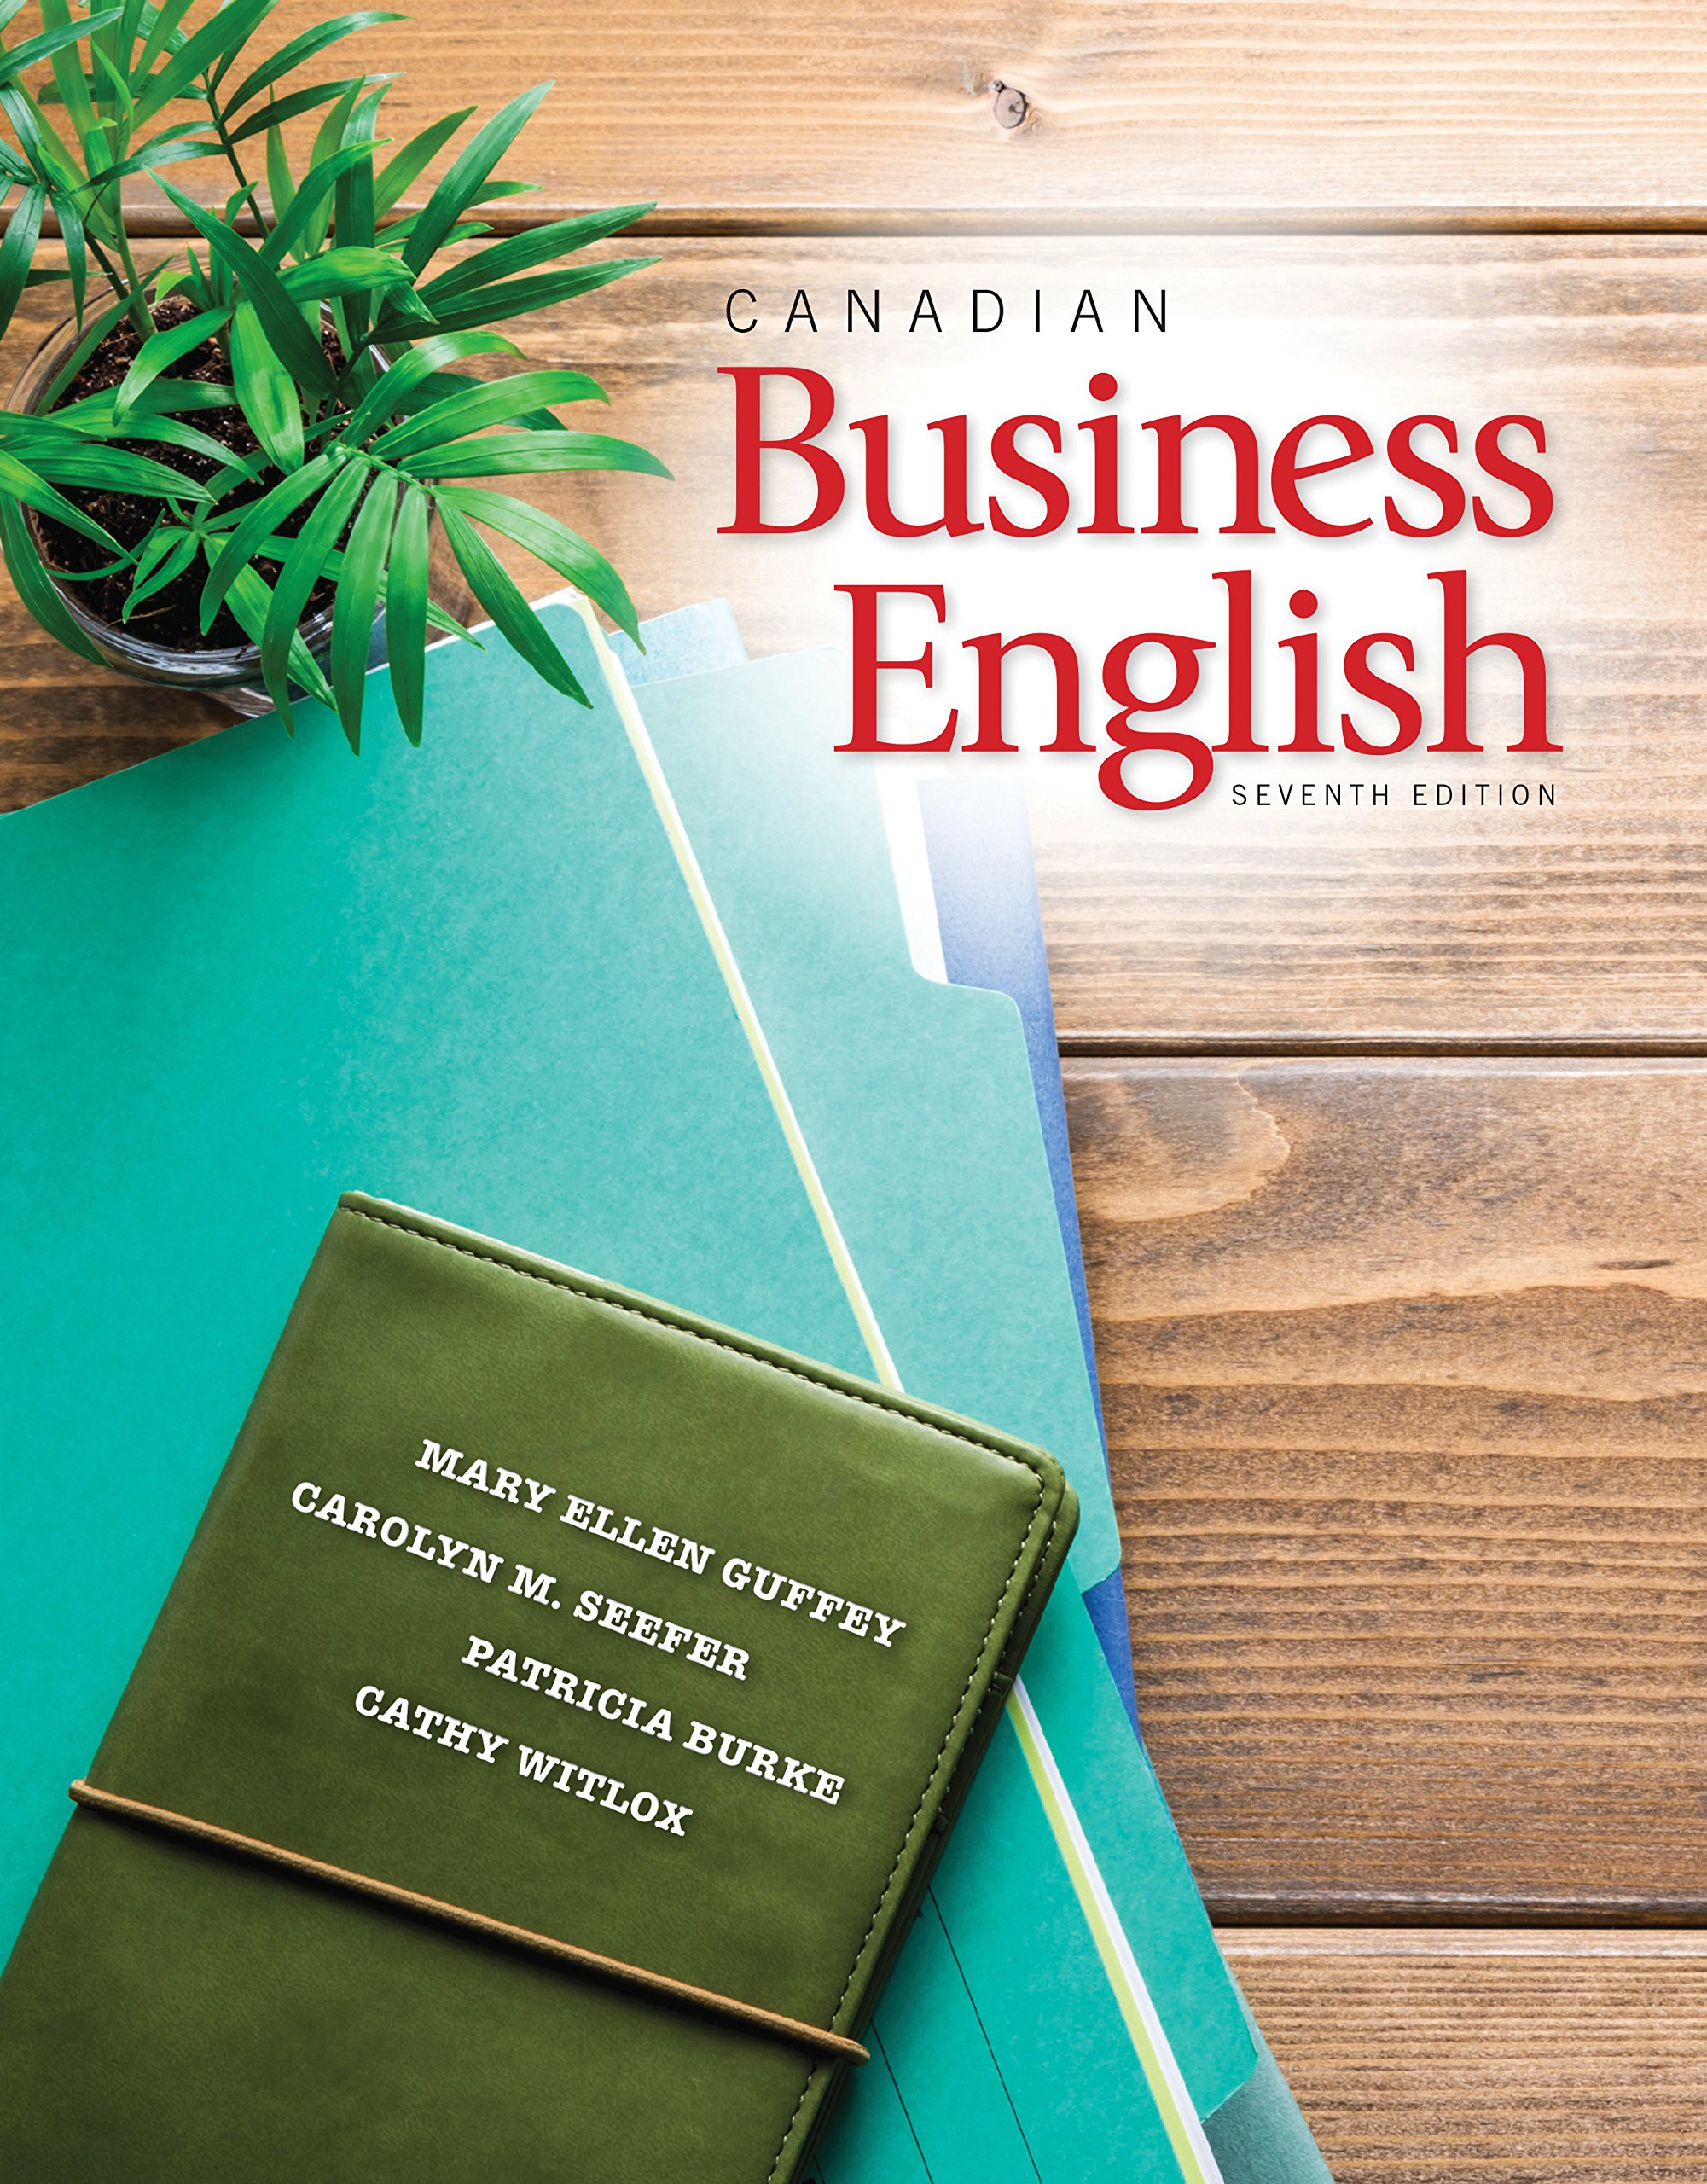 Canadian Business English: Mary Guffey, Carolyn Seefer, Patricia Burke,  Cathy Witlox: 9780176582968: Business Communication: Amazon Canada